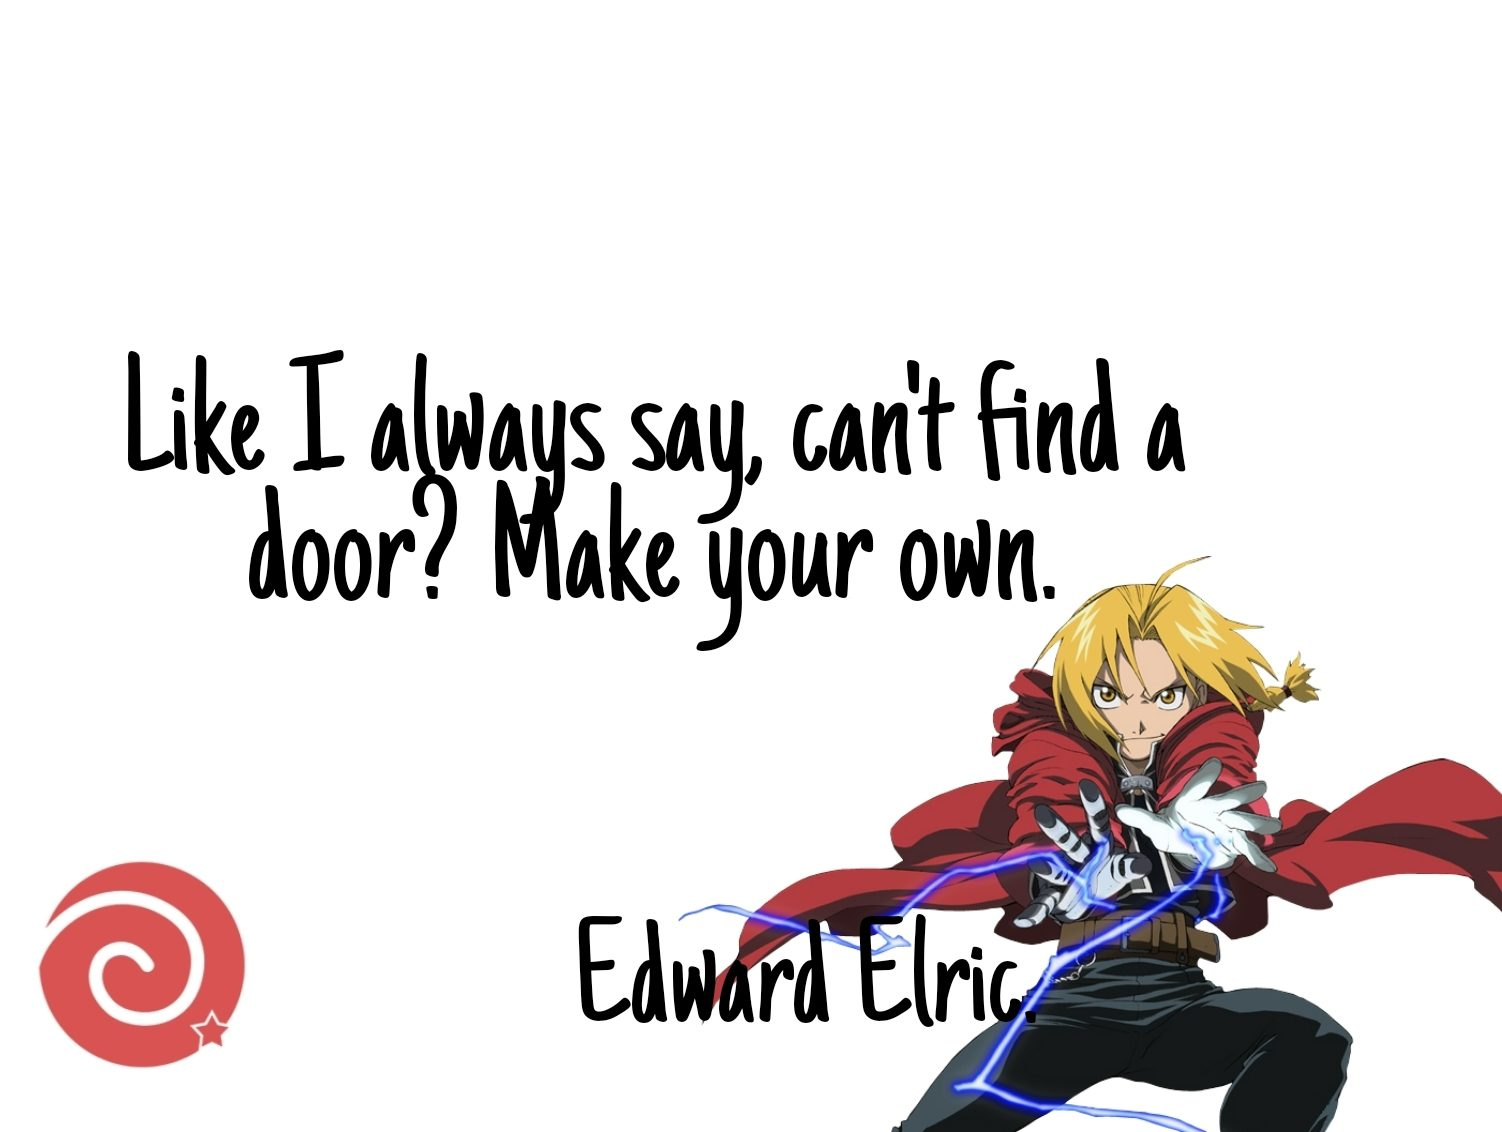 Quotes by Edward Elric